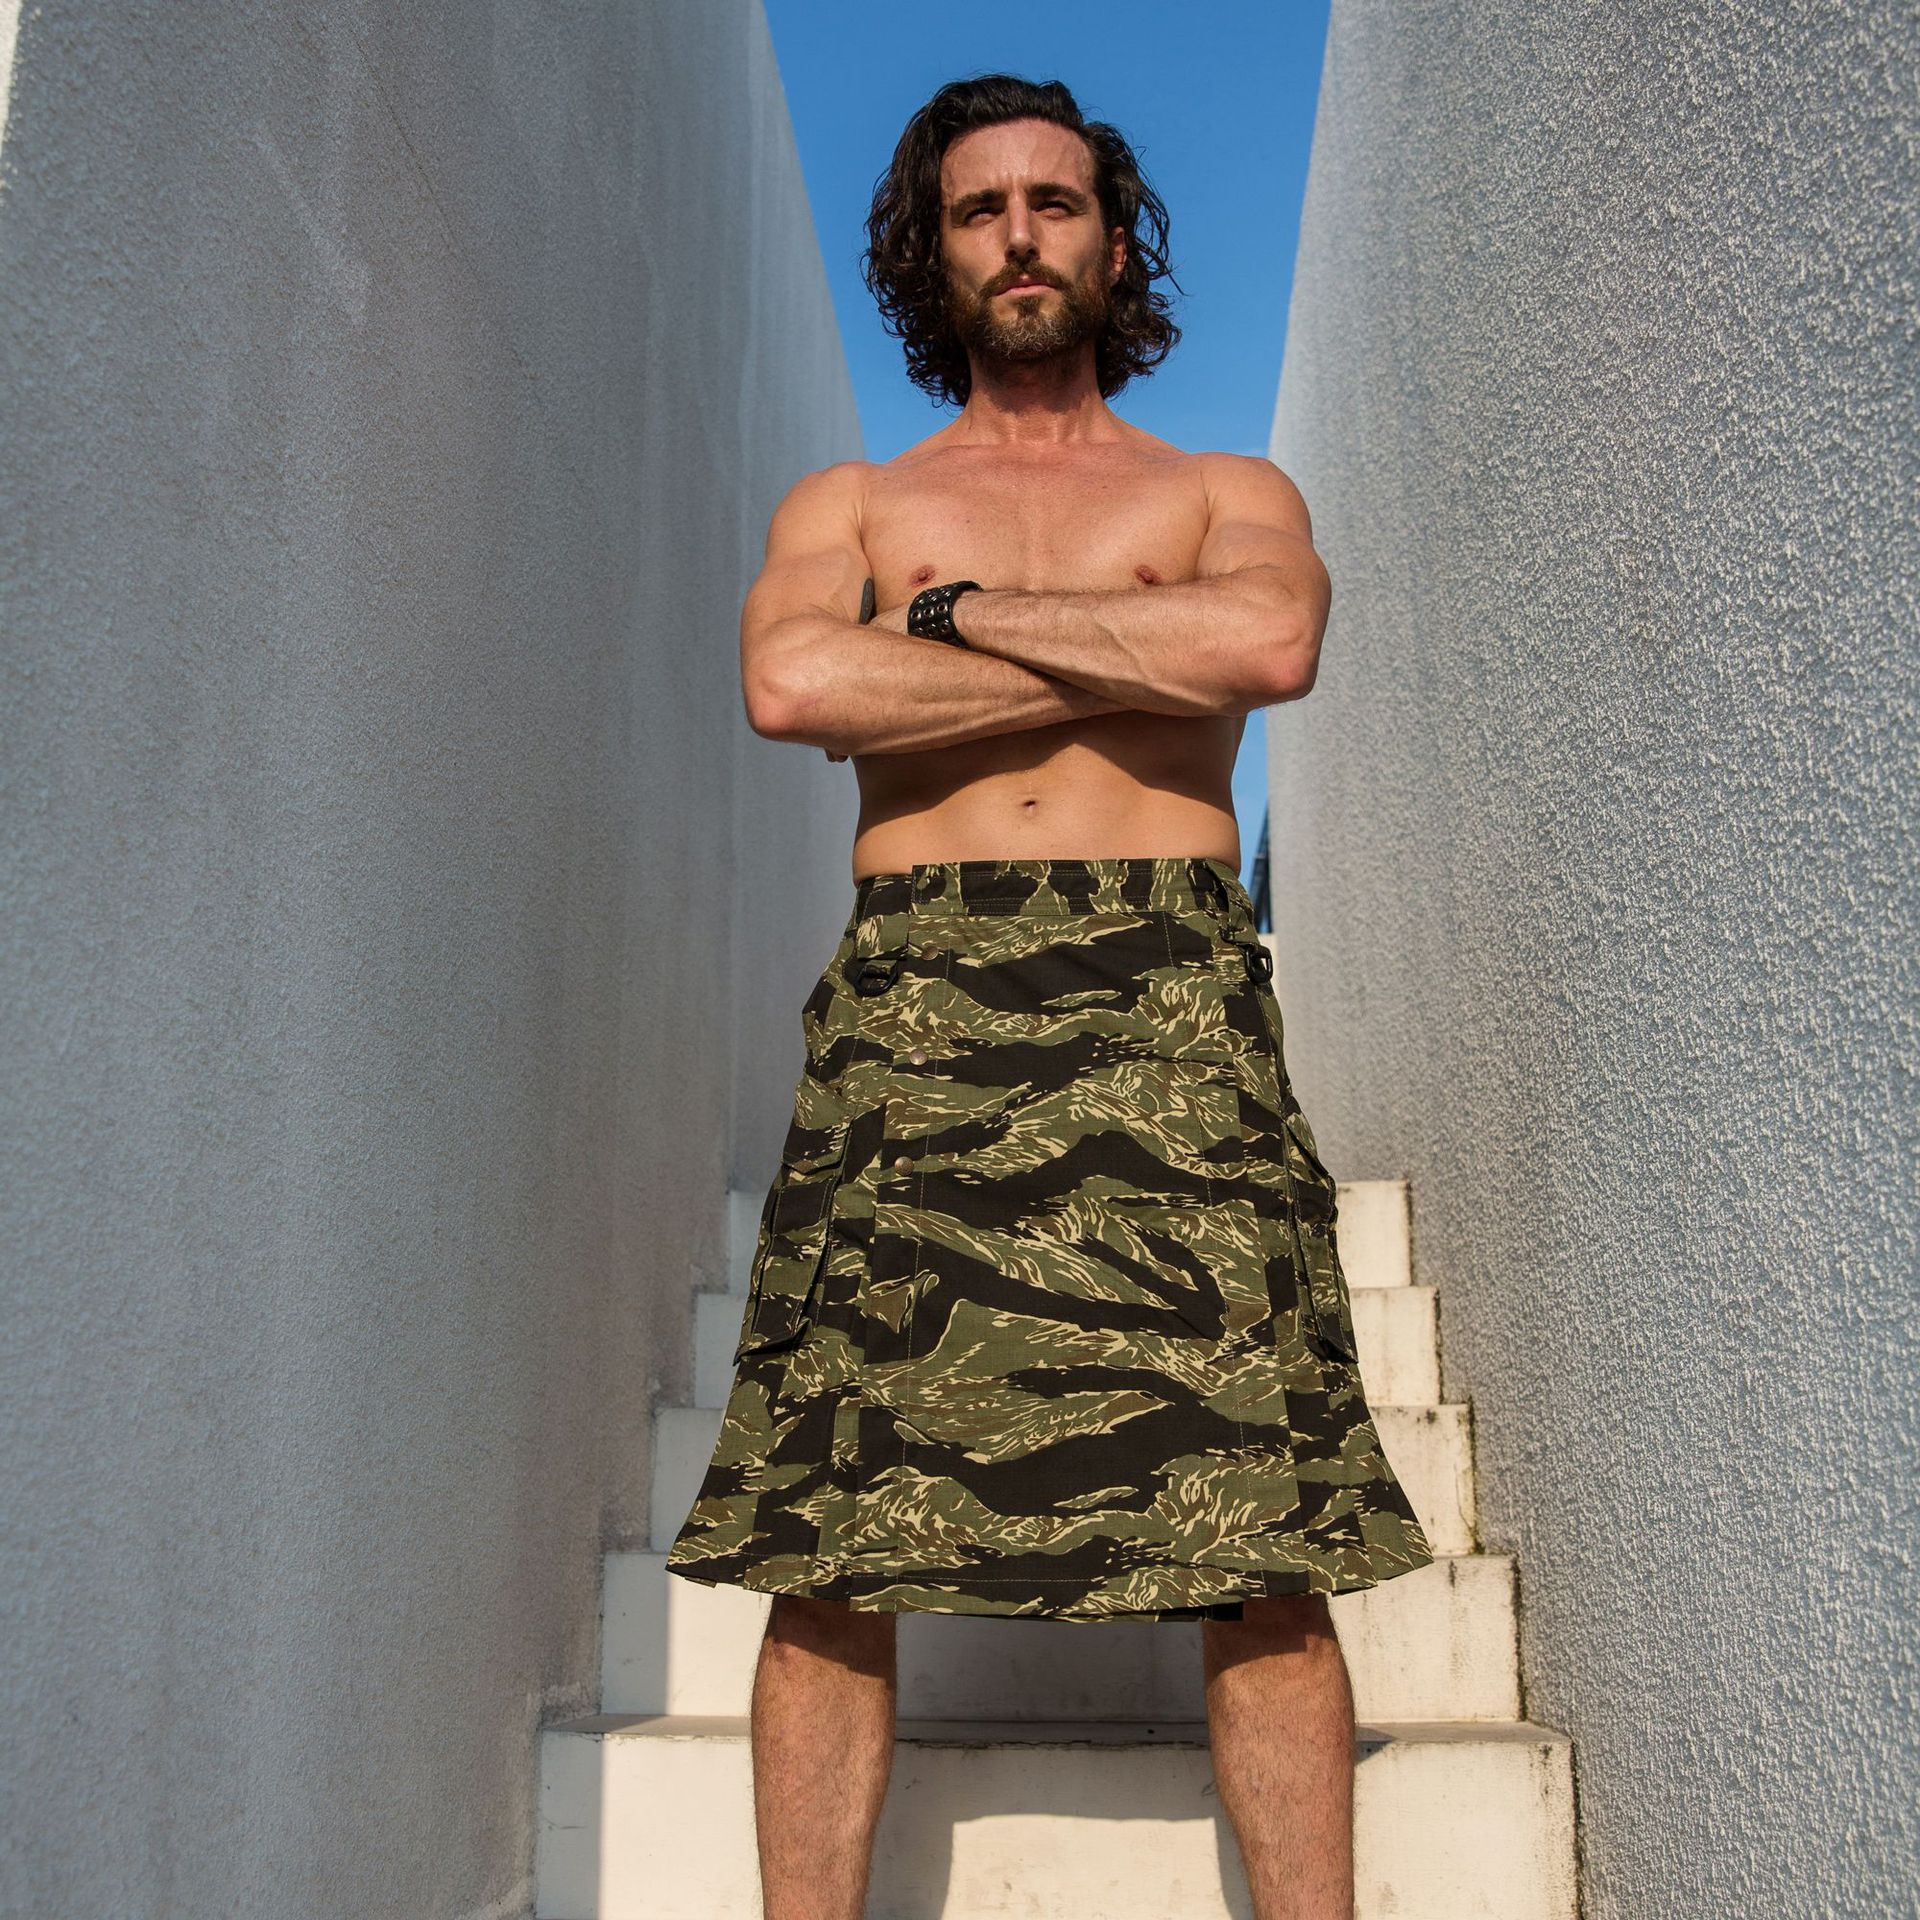 Warchief/Chief Camouflage Scottish Kilt Army Fans Scotland Tactical Skirt Men's Outdoor Camouflage Suit